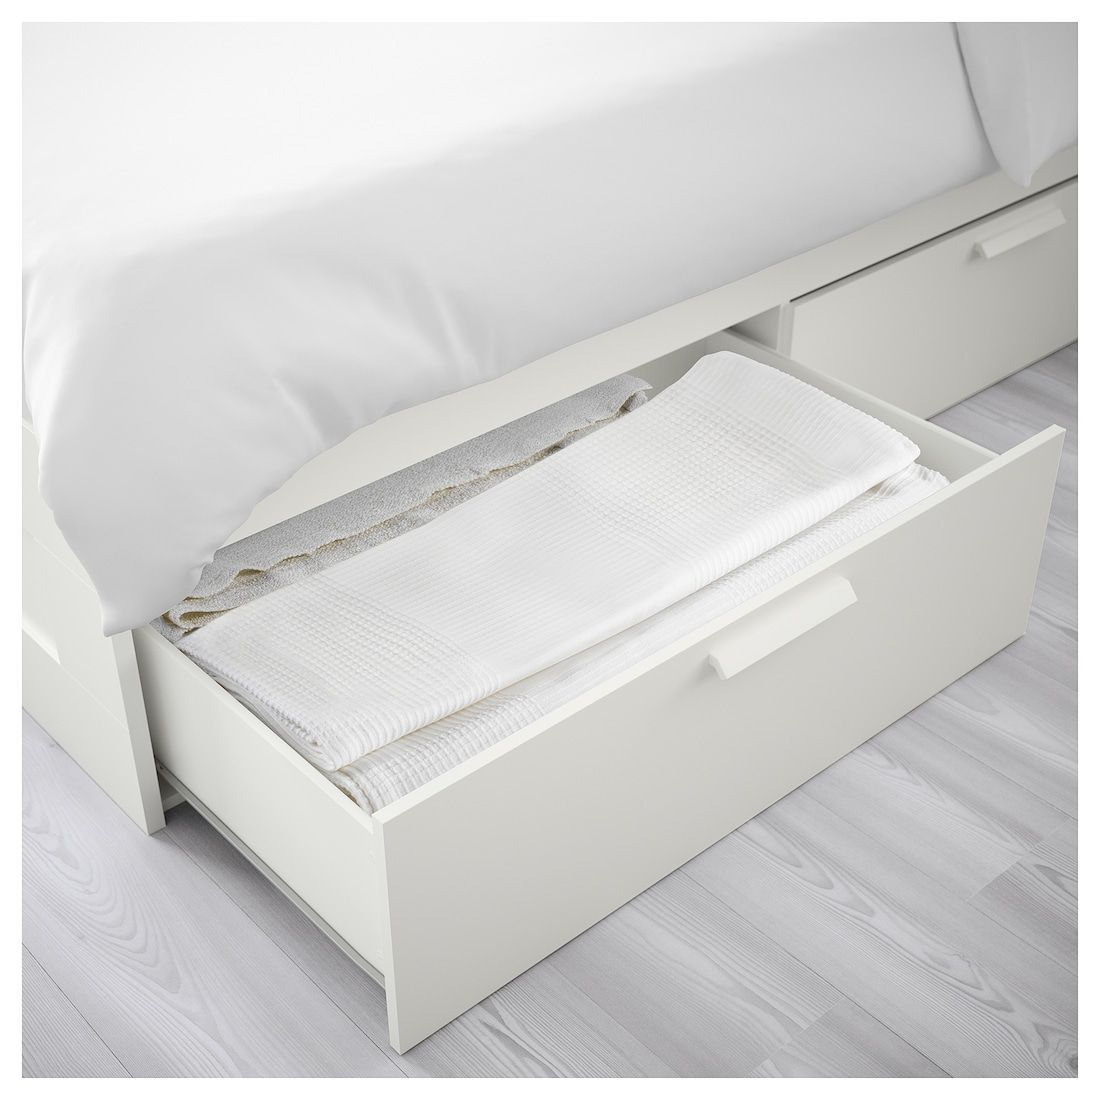 Brimnes Bed Frame With Storage White Luroy Queen Ikea In 2020 Bed Frame With Storage Bed Frame Adjustable Beds